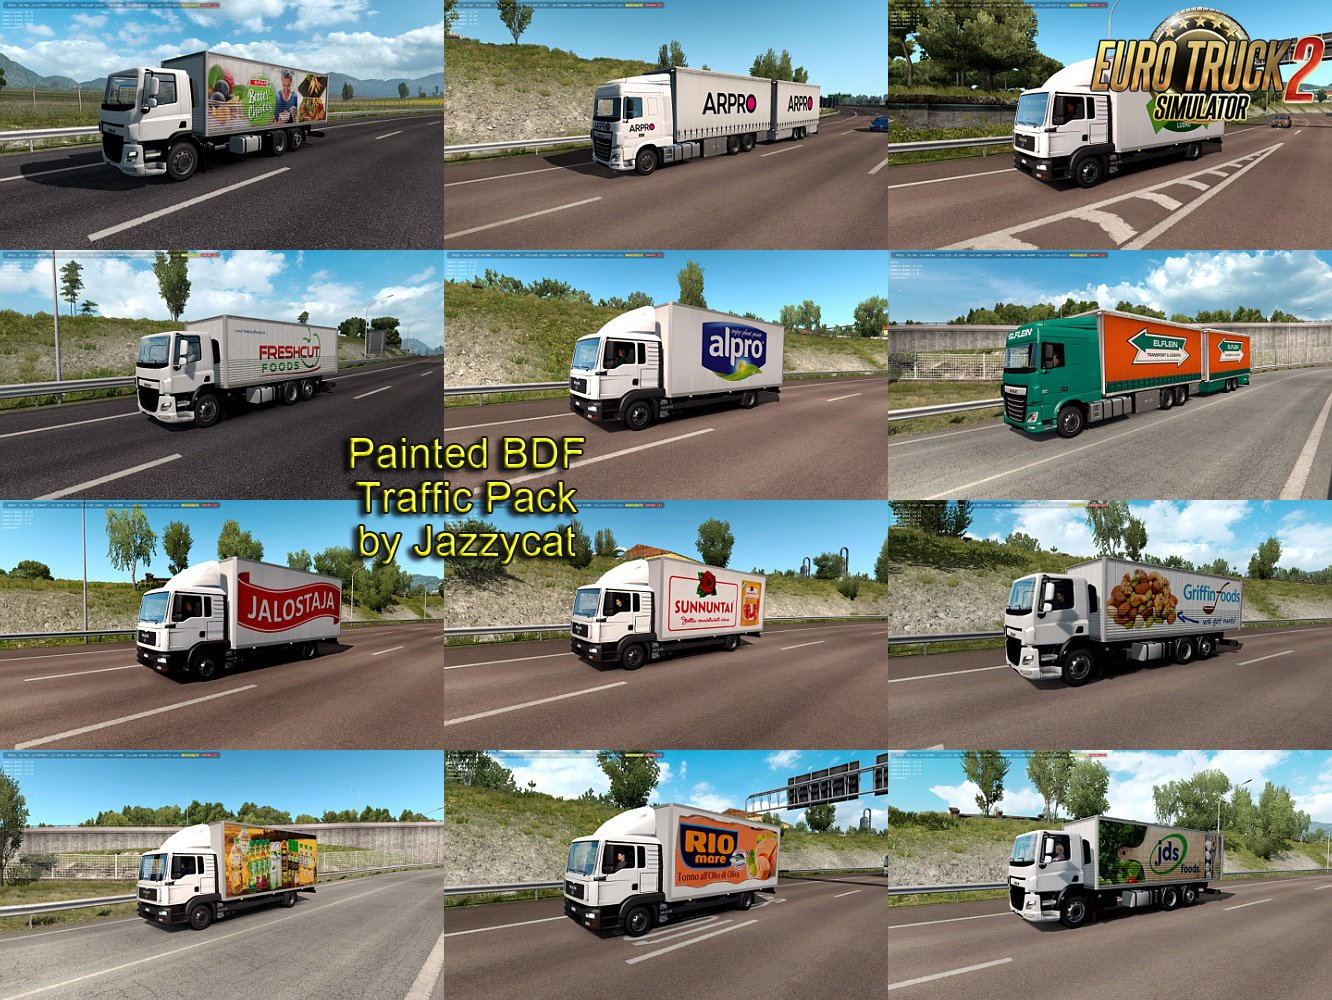 Painted BDF Traffic Pack v4.4 by Jazzycat